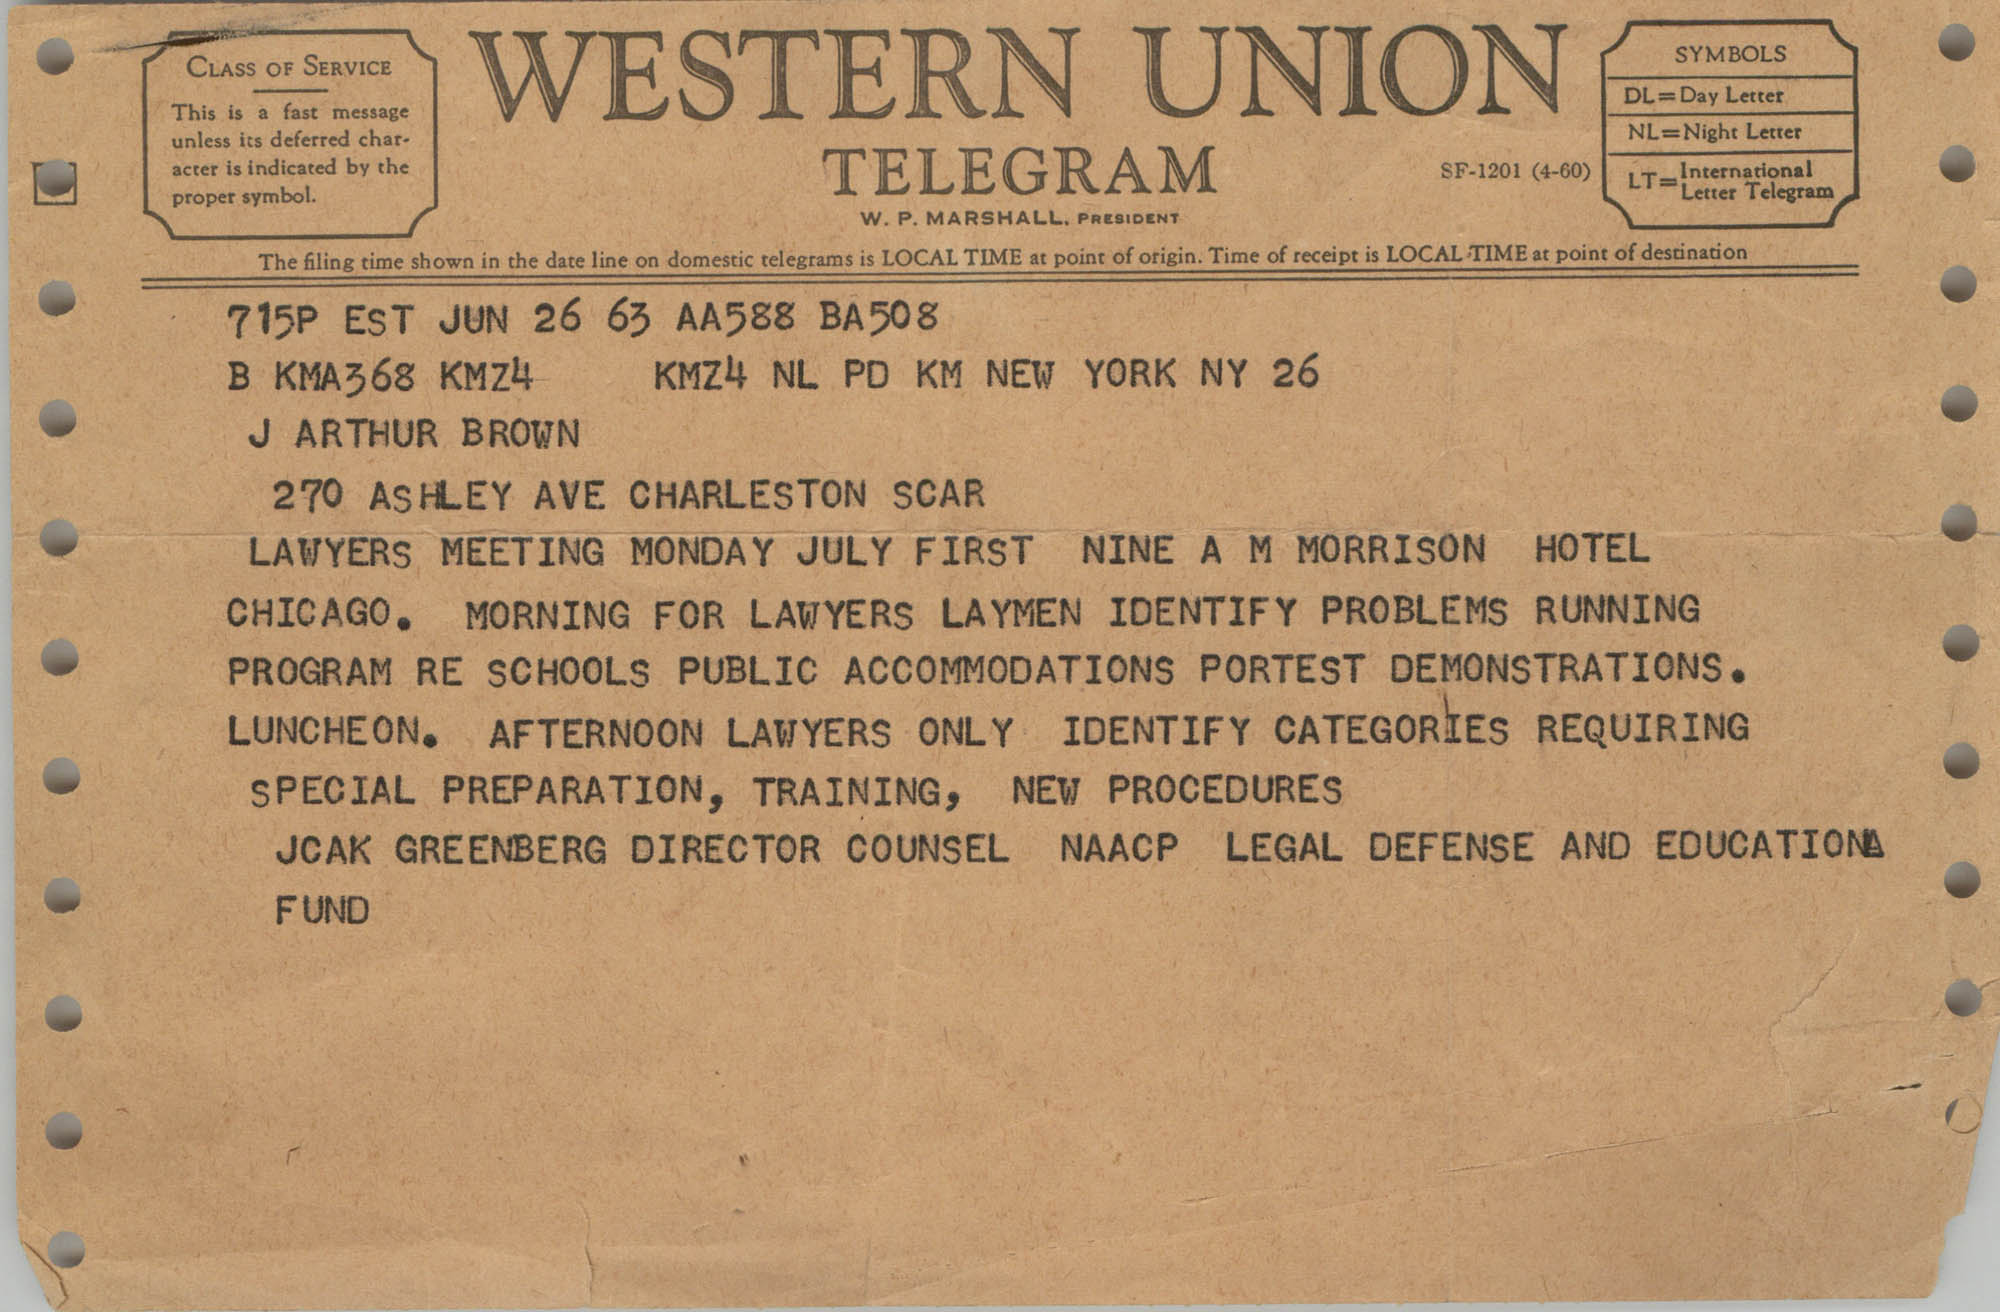 Telegram from Jack Greenberg to J. Arthur Brown, June 26, 1963